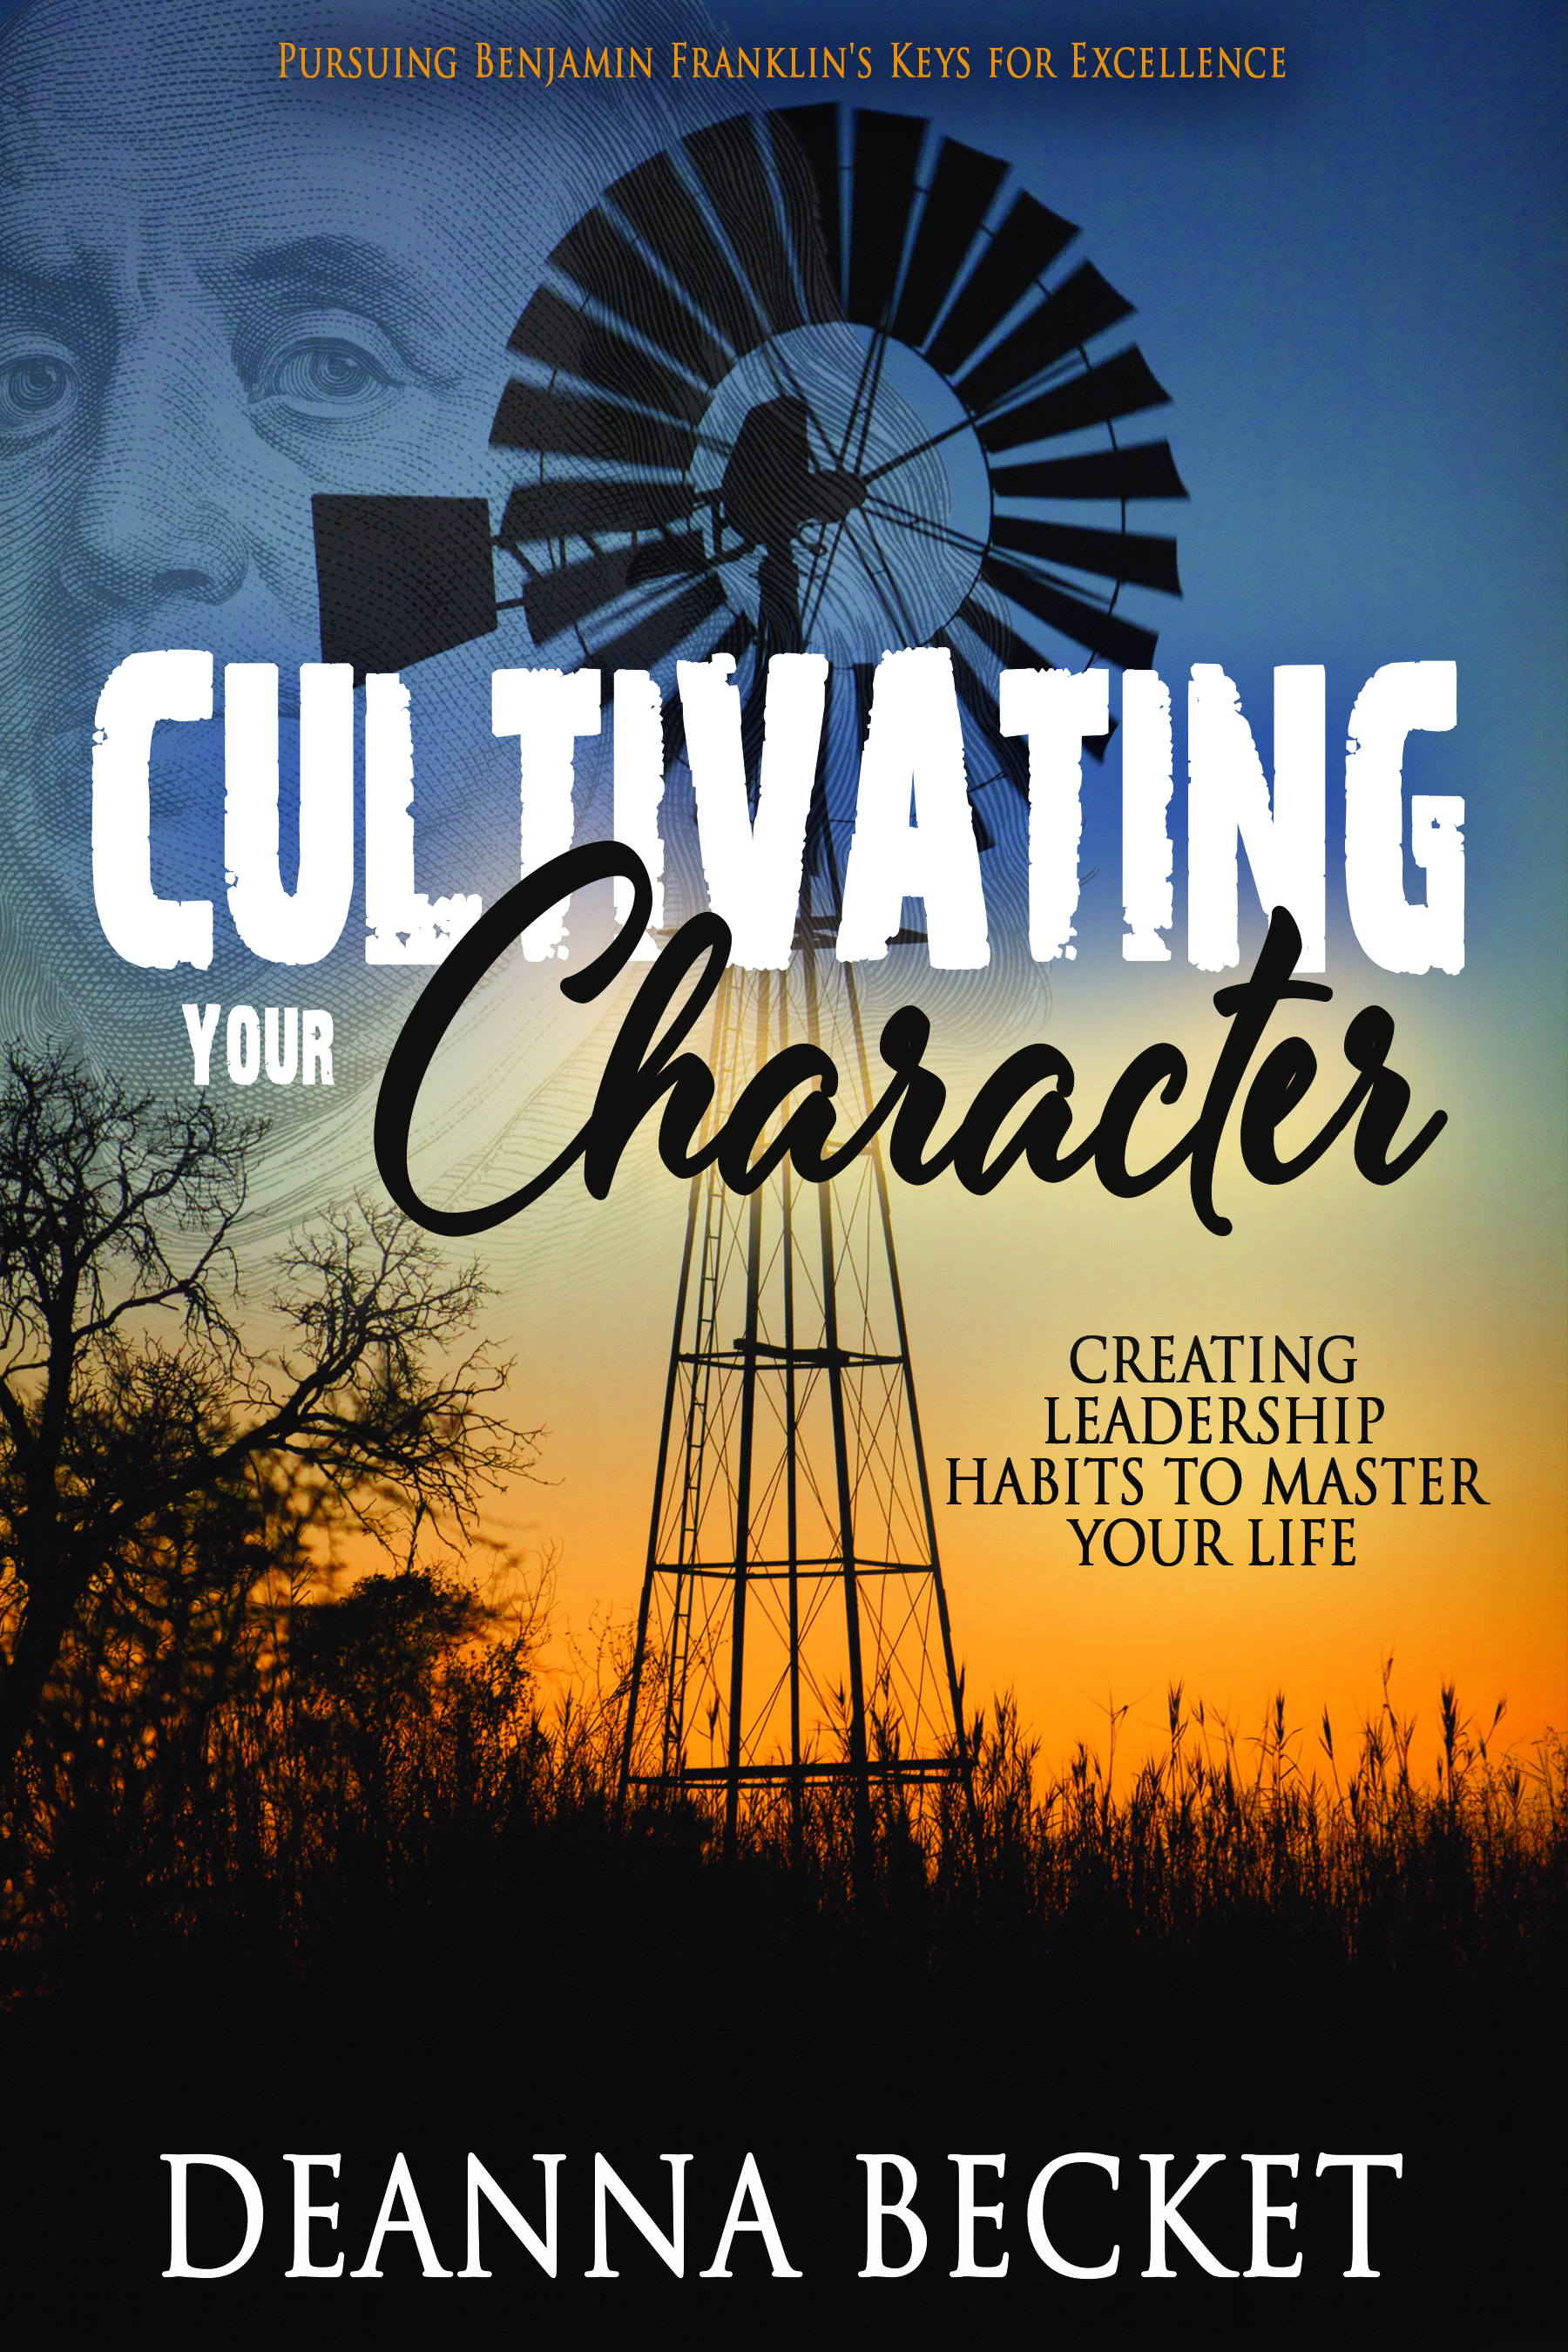 Cultivating Your Character | Book | Benjamin Franklin | Excellence | Deanna Becket